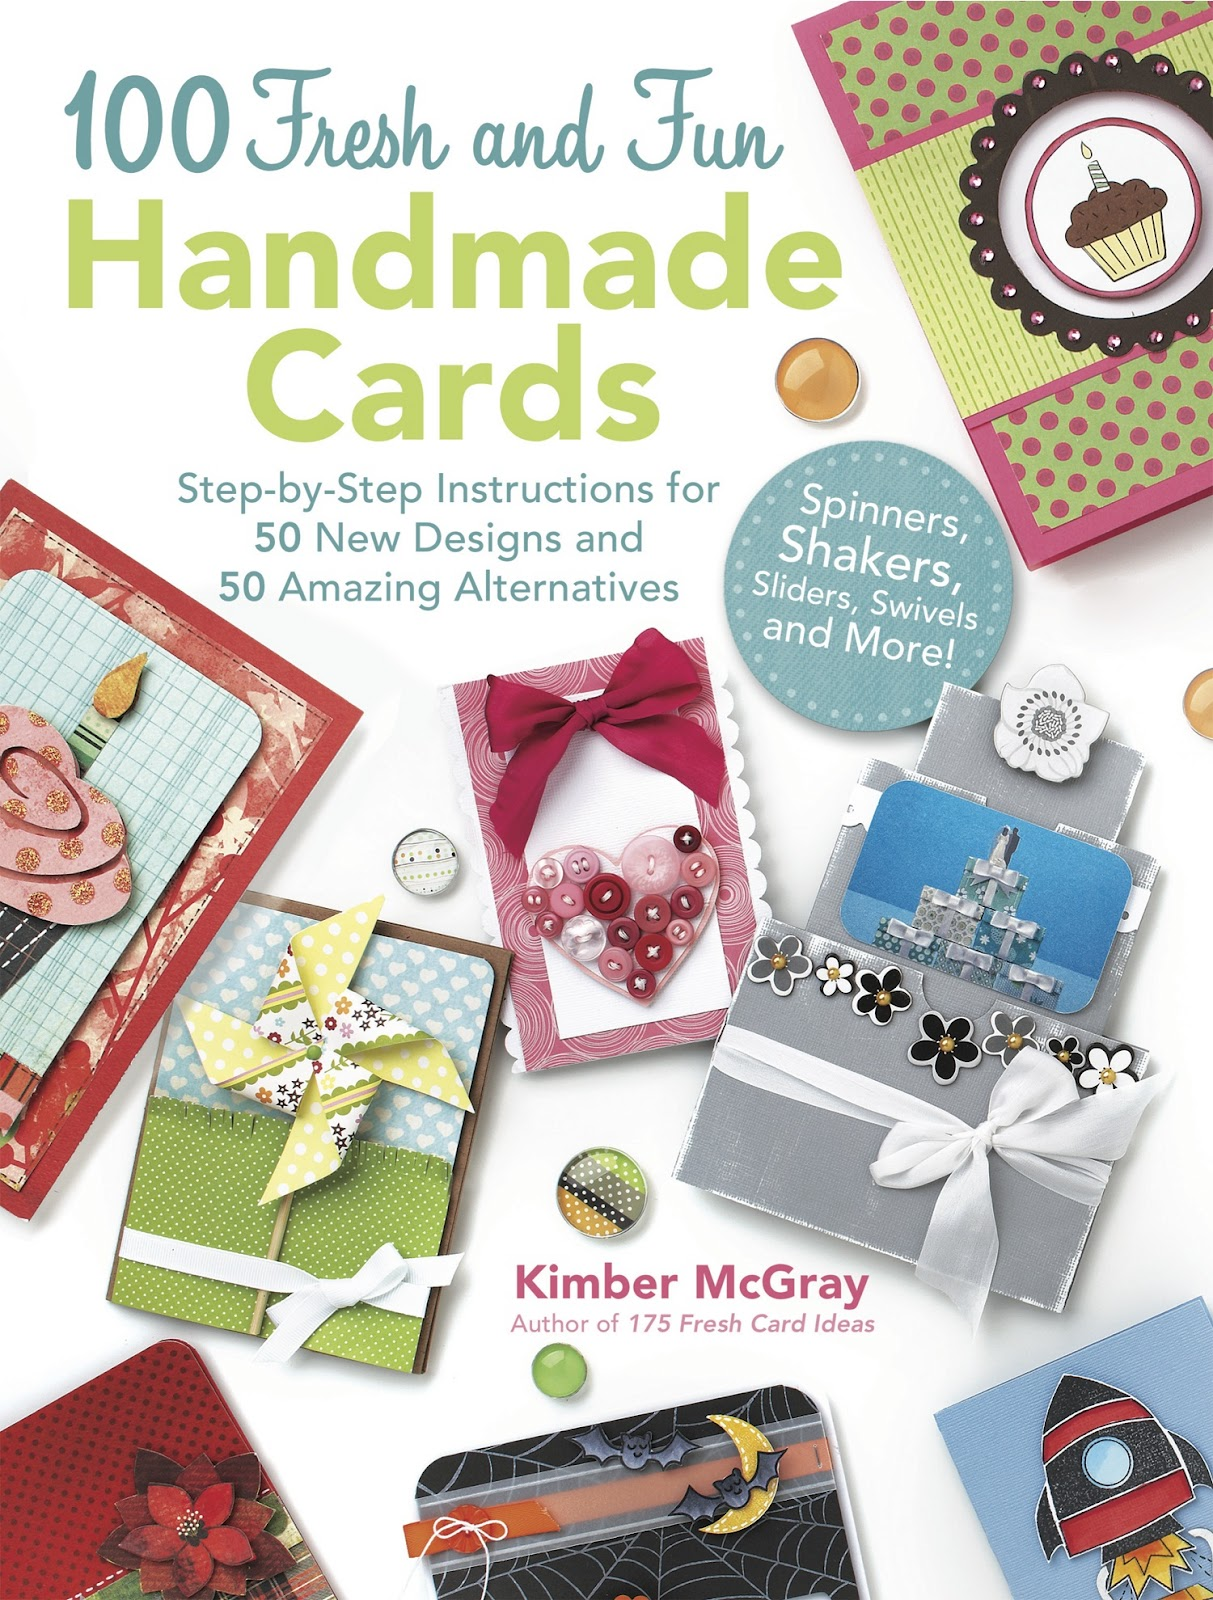 100 Handmade Gifts Under Five Dollars: Whirlwind: 100 Fresh And Fun Handmade Cards GIVEAWAY Blog Hop